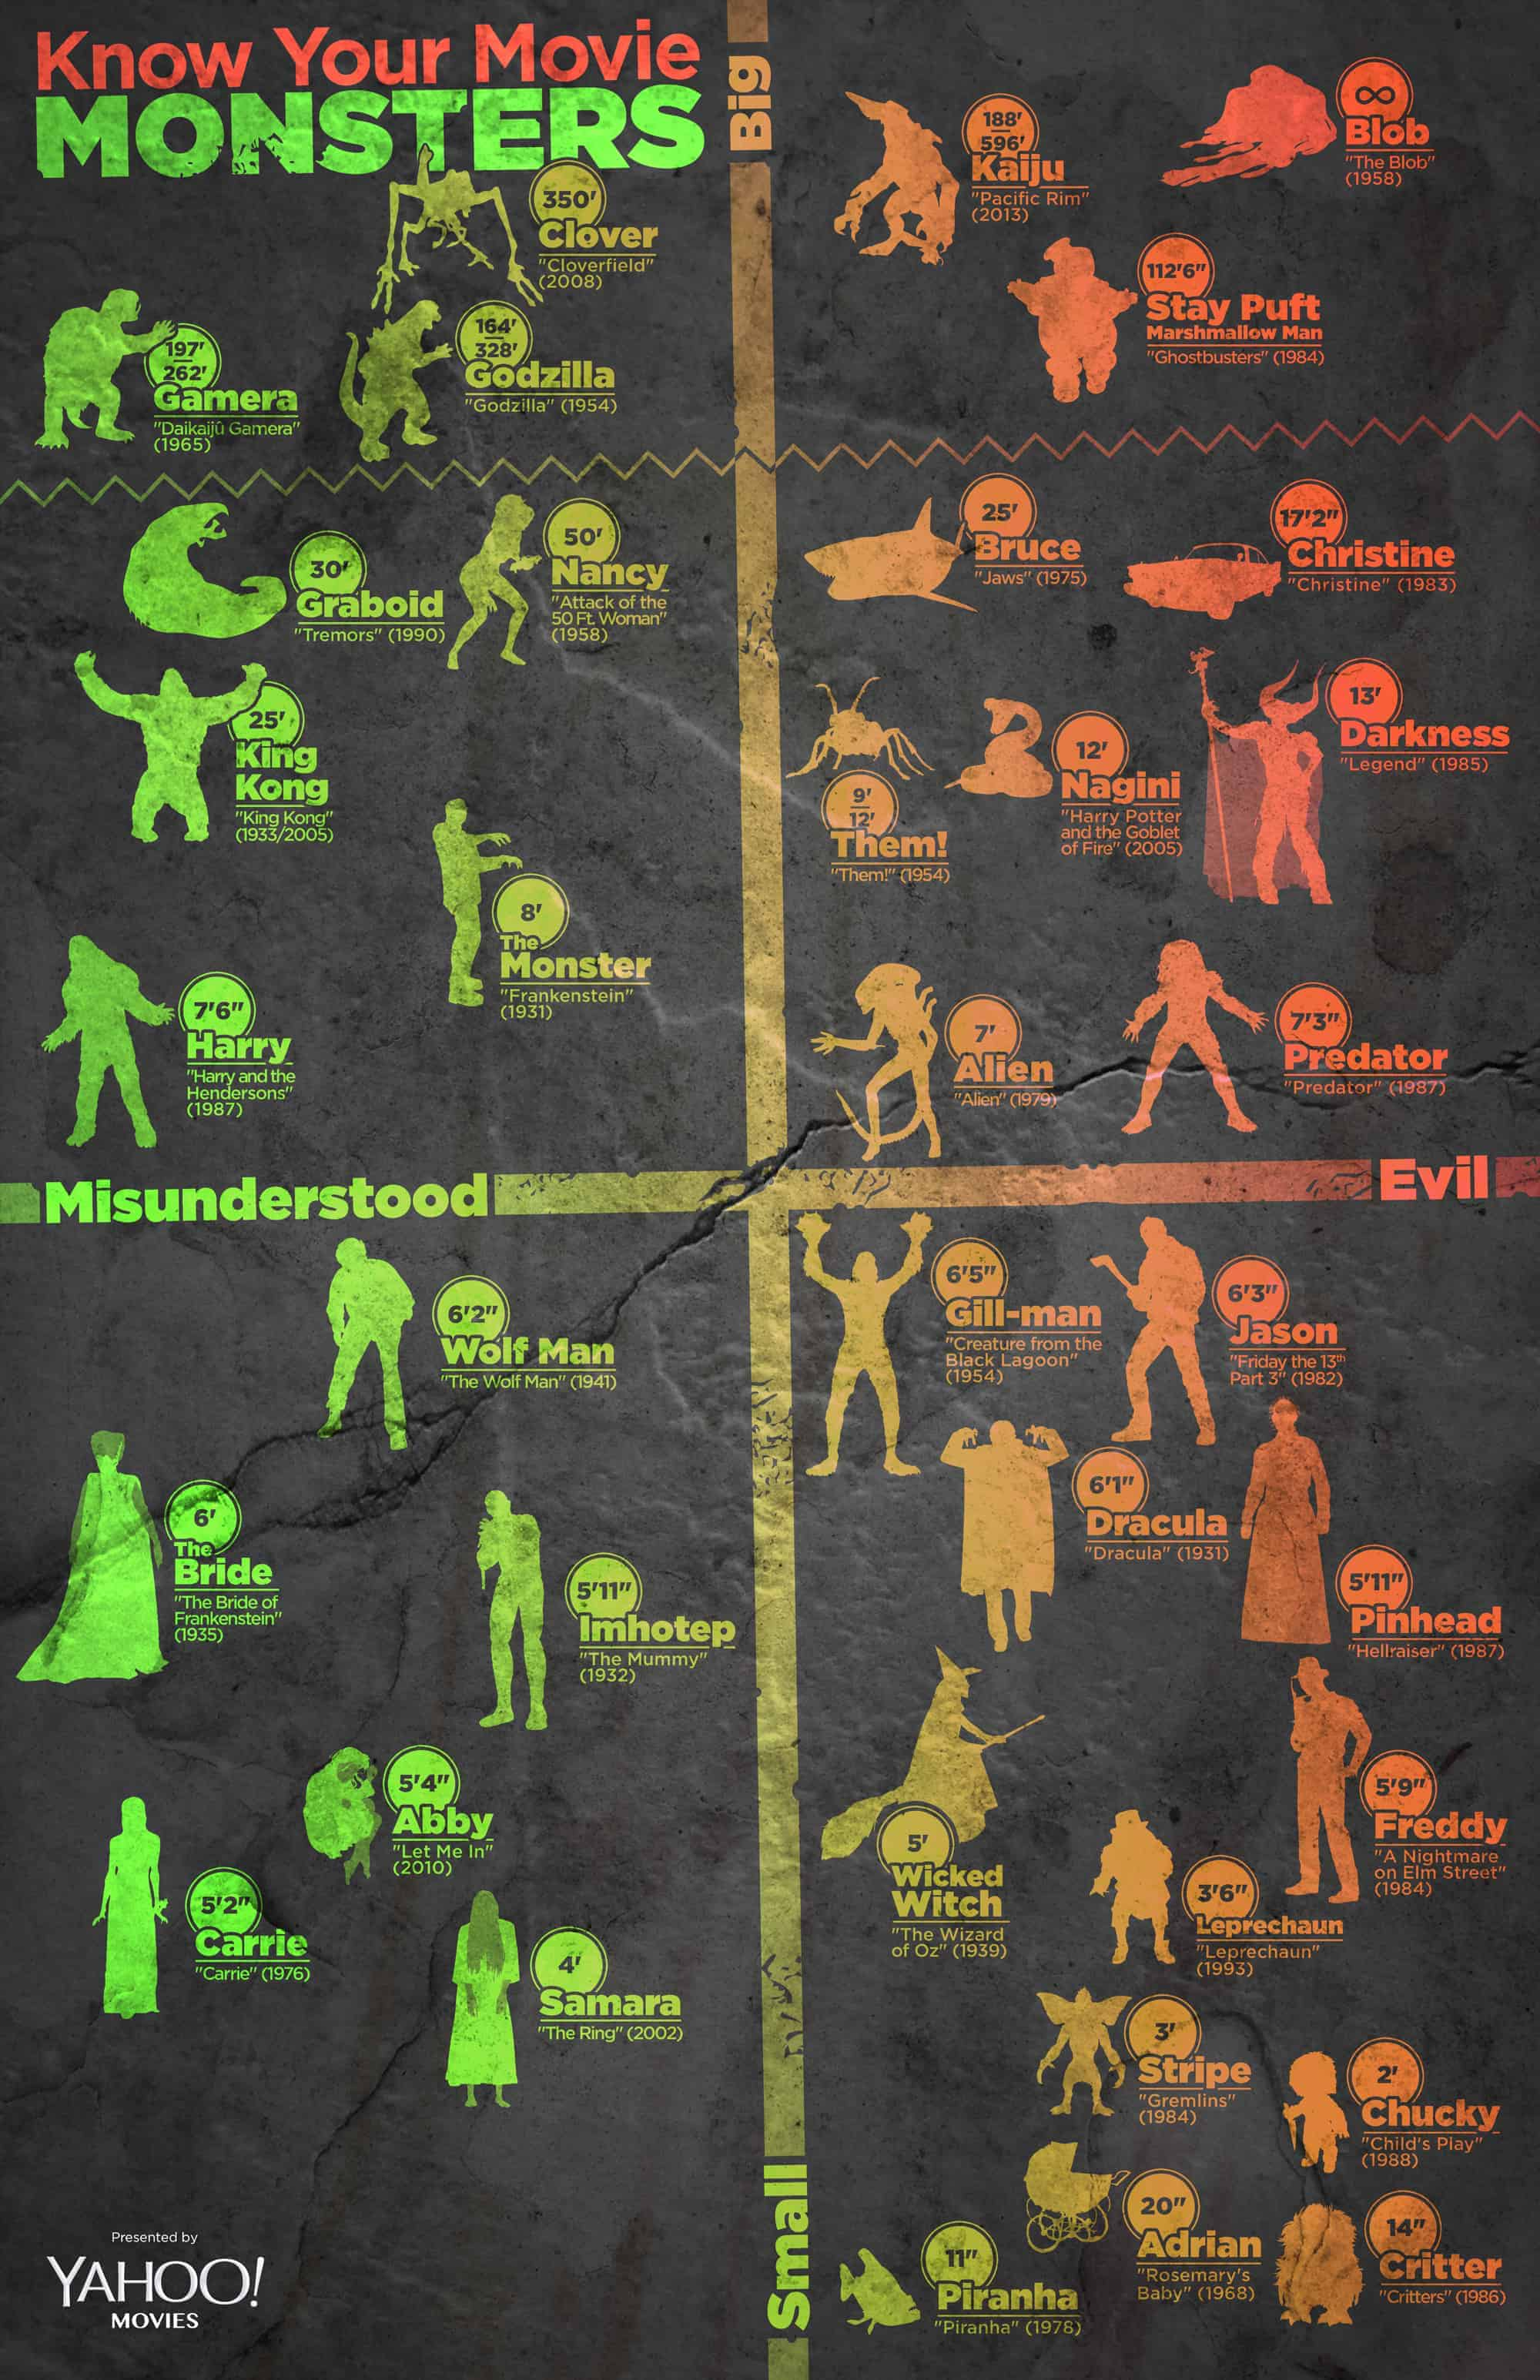 77db5991-a9bf-45a5-80bd-5243724bab01_infographic-movies-halloween-2013-monster-size-v8